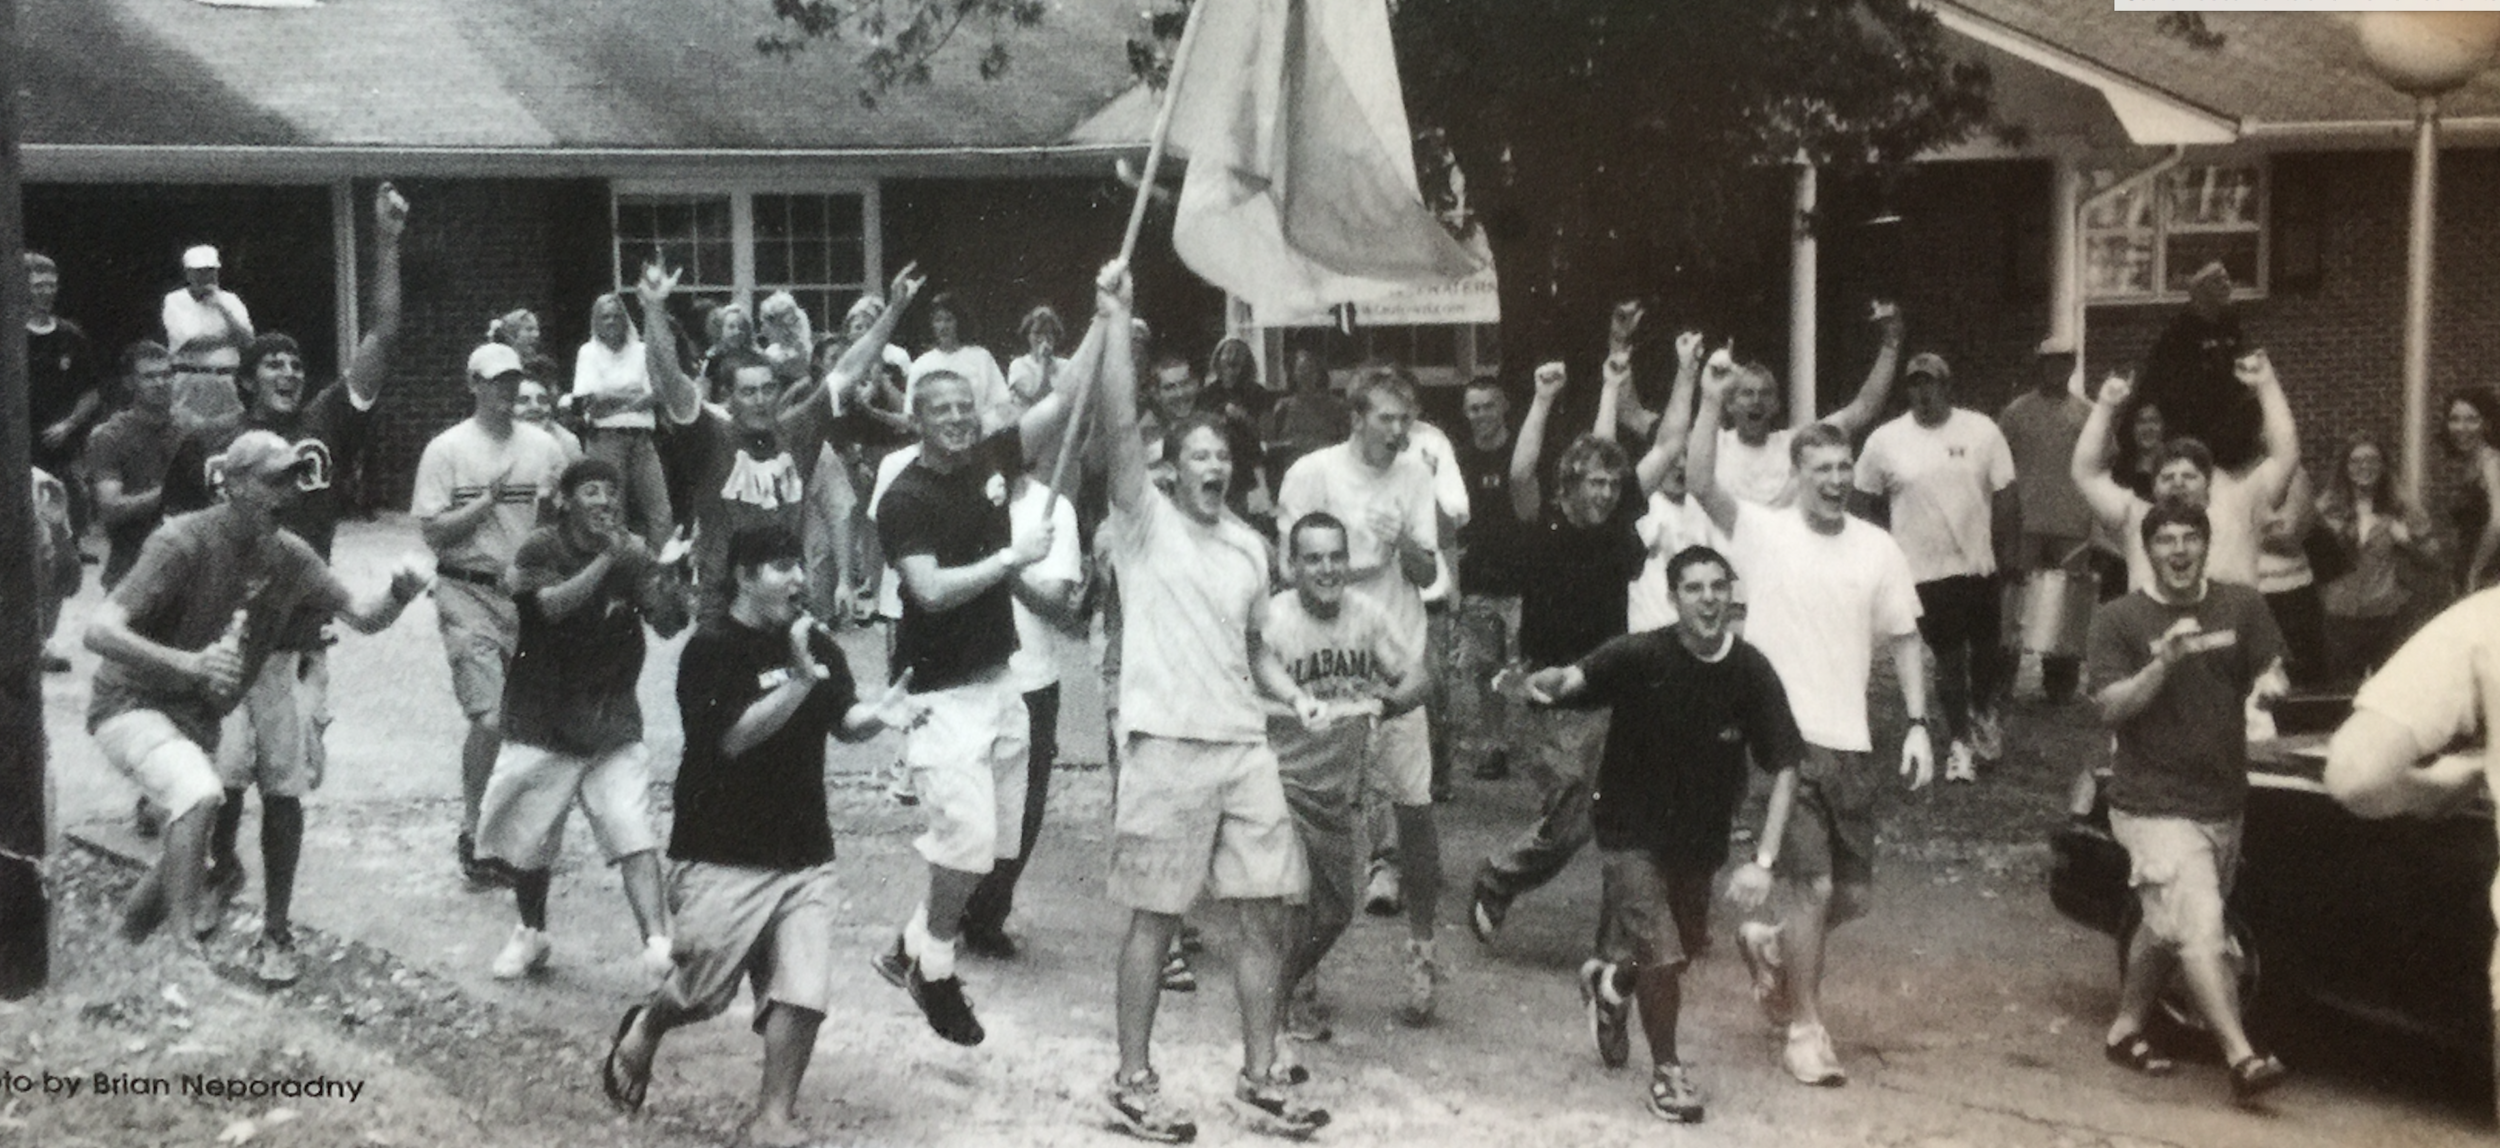 This is how you were greeted when you joined ATO at UNA.